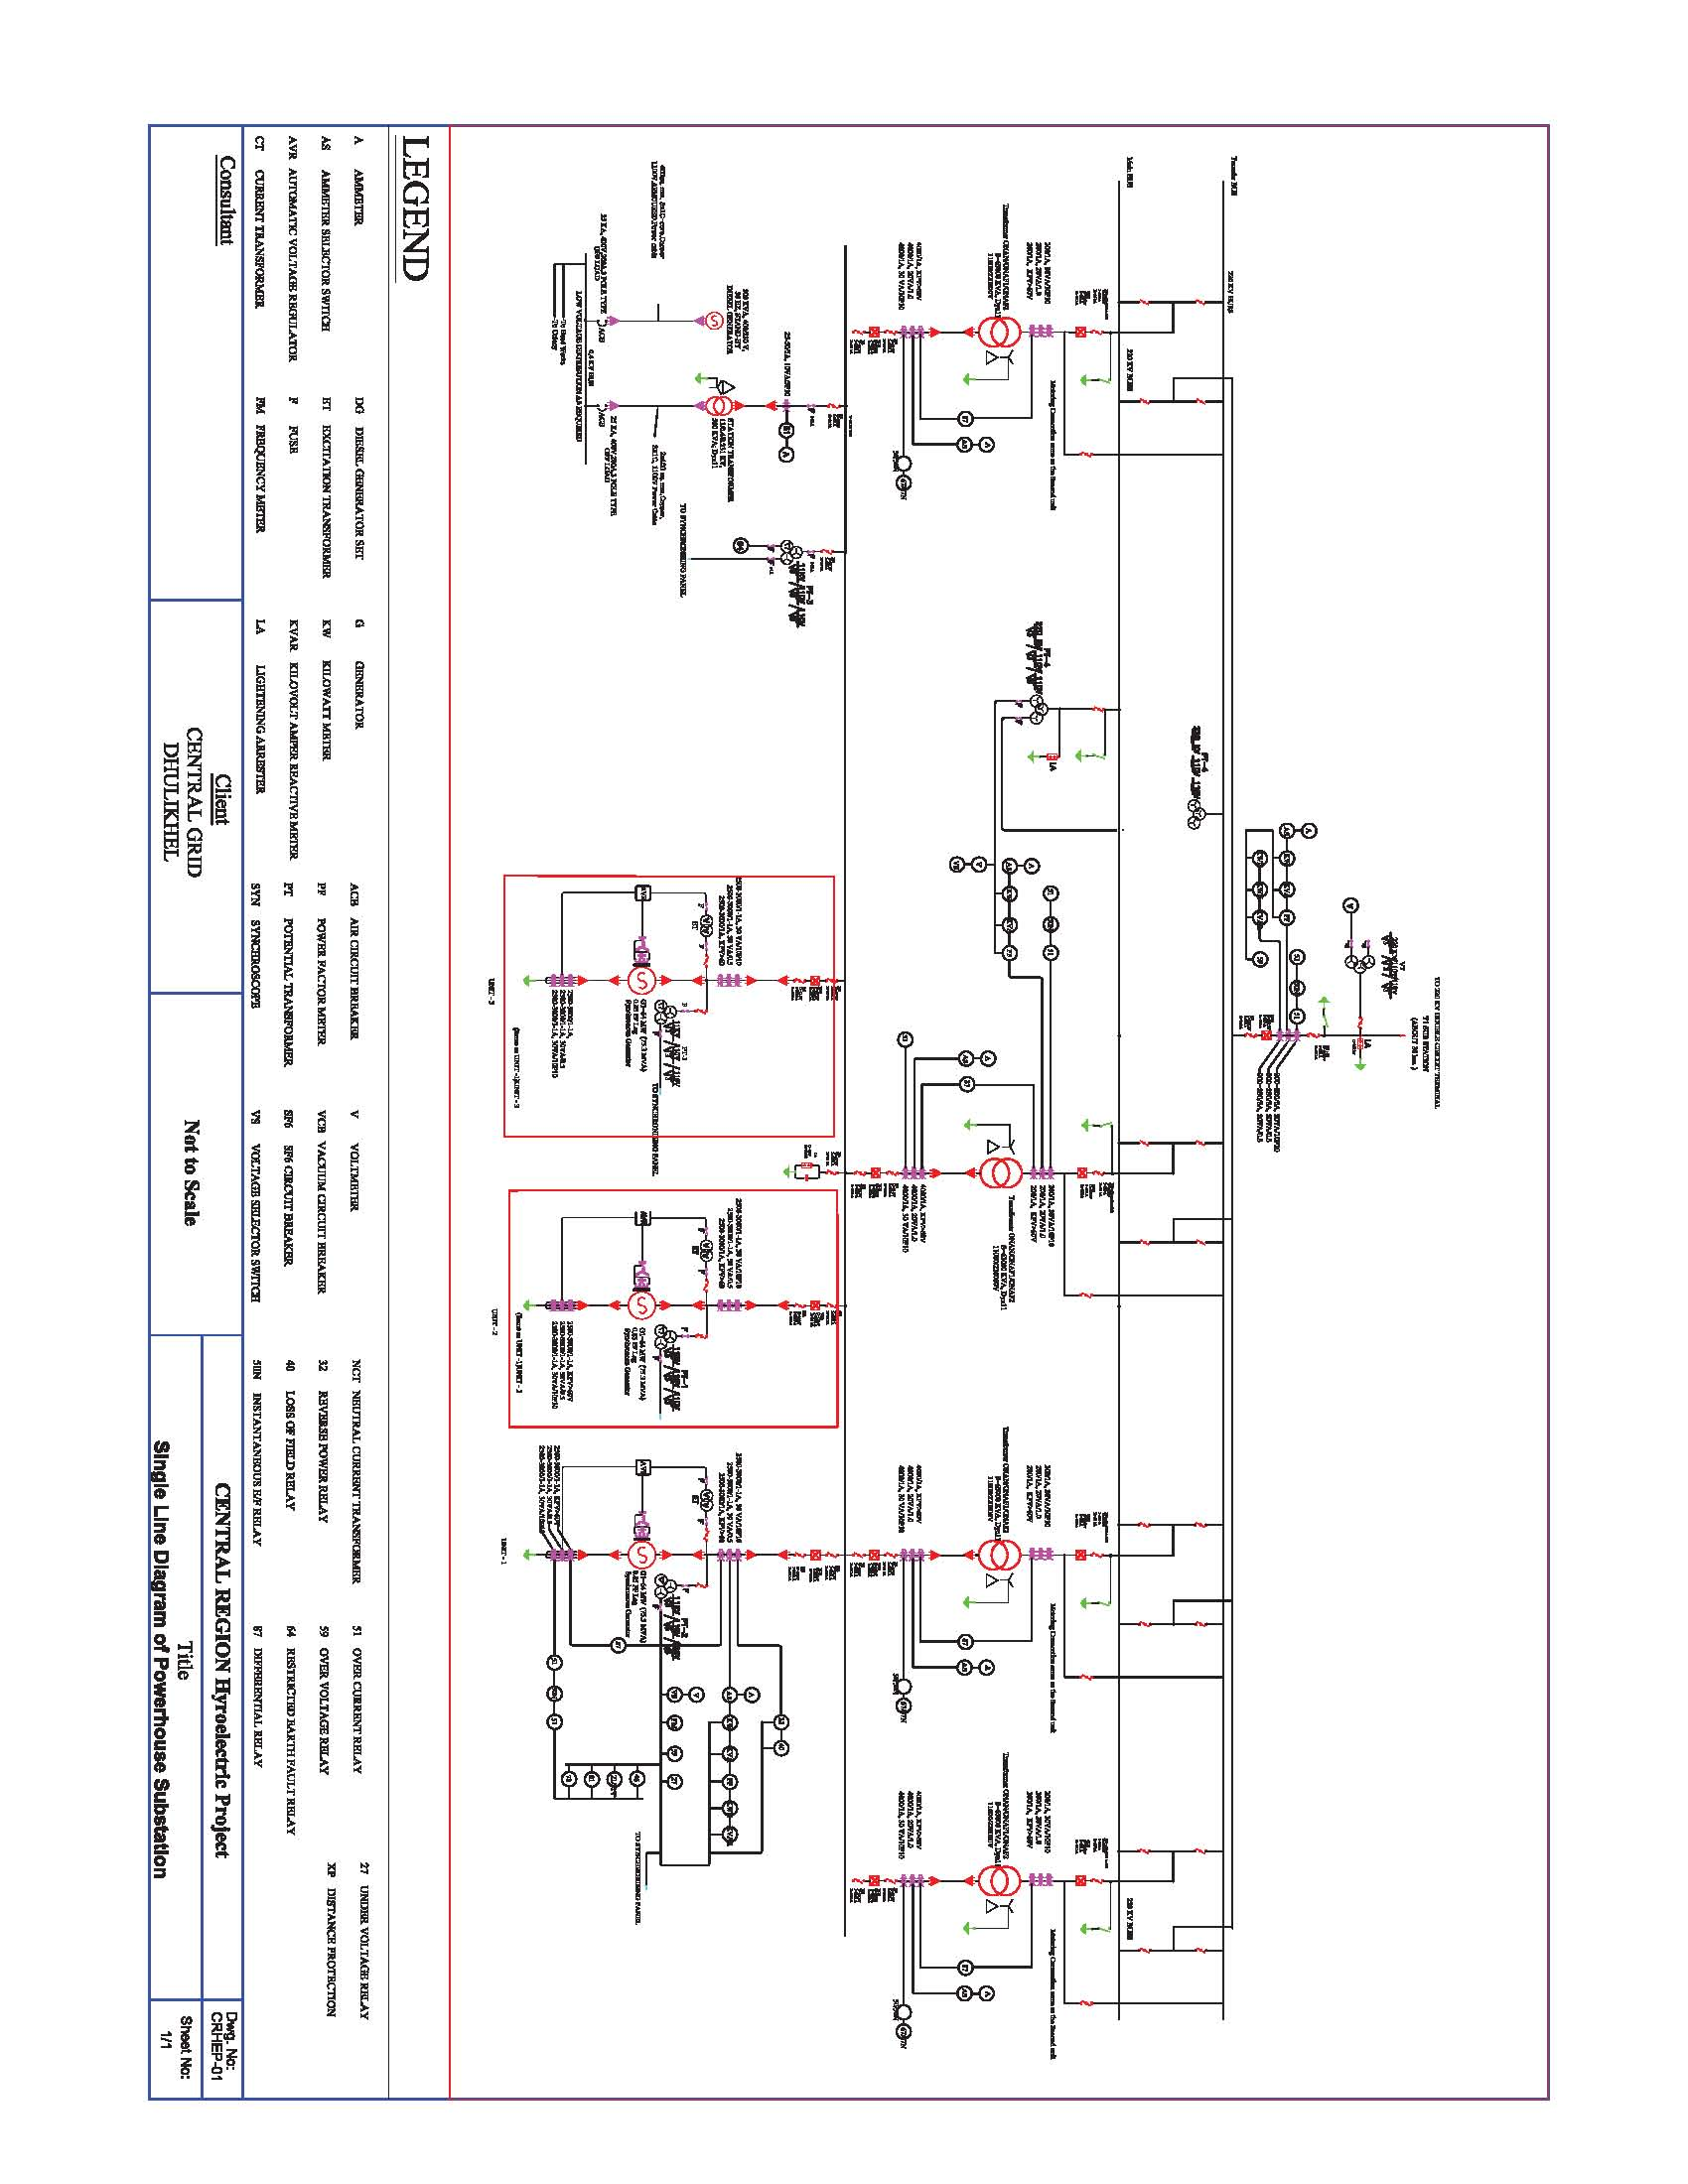 single line diagram of power distribution bmw e53 stereo wiring plant electrical free